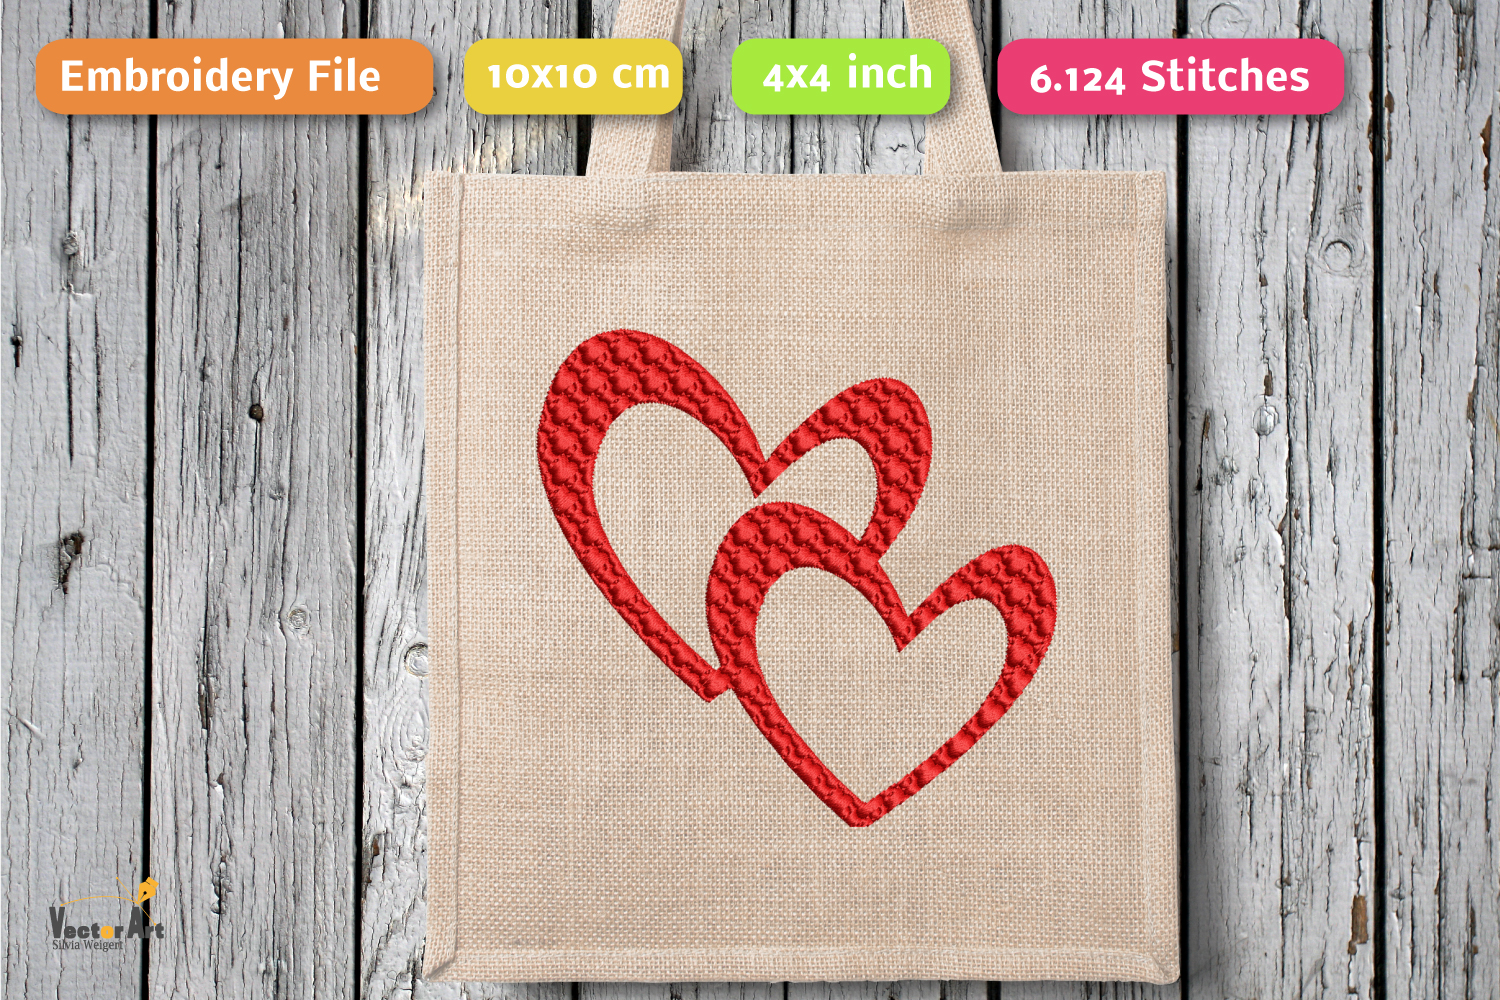 3 Hearts - Set - Embroidery File - 4x4 inch example image 3